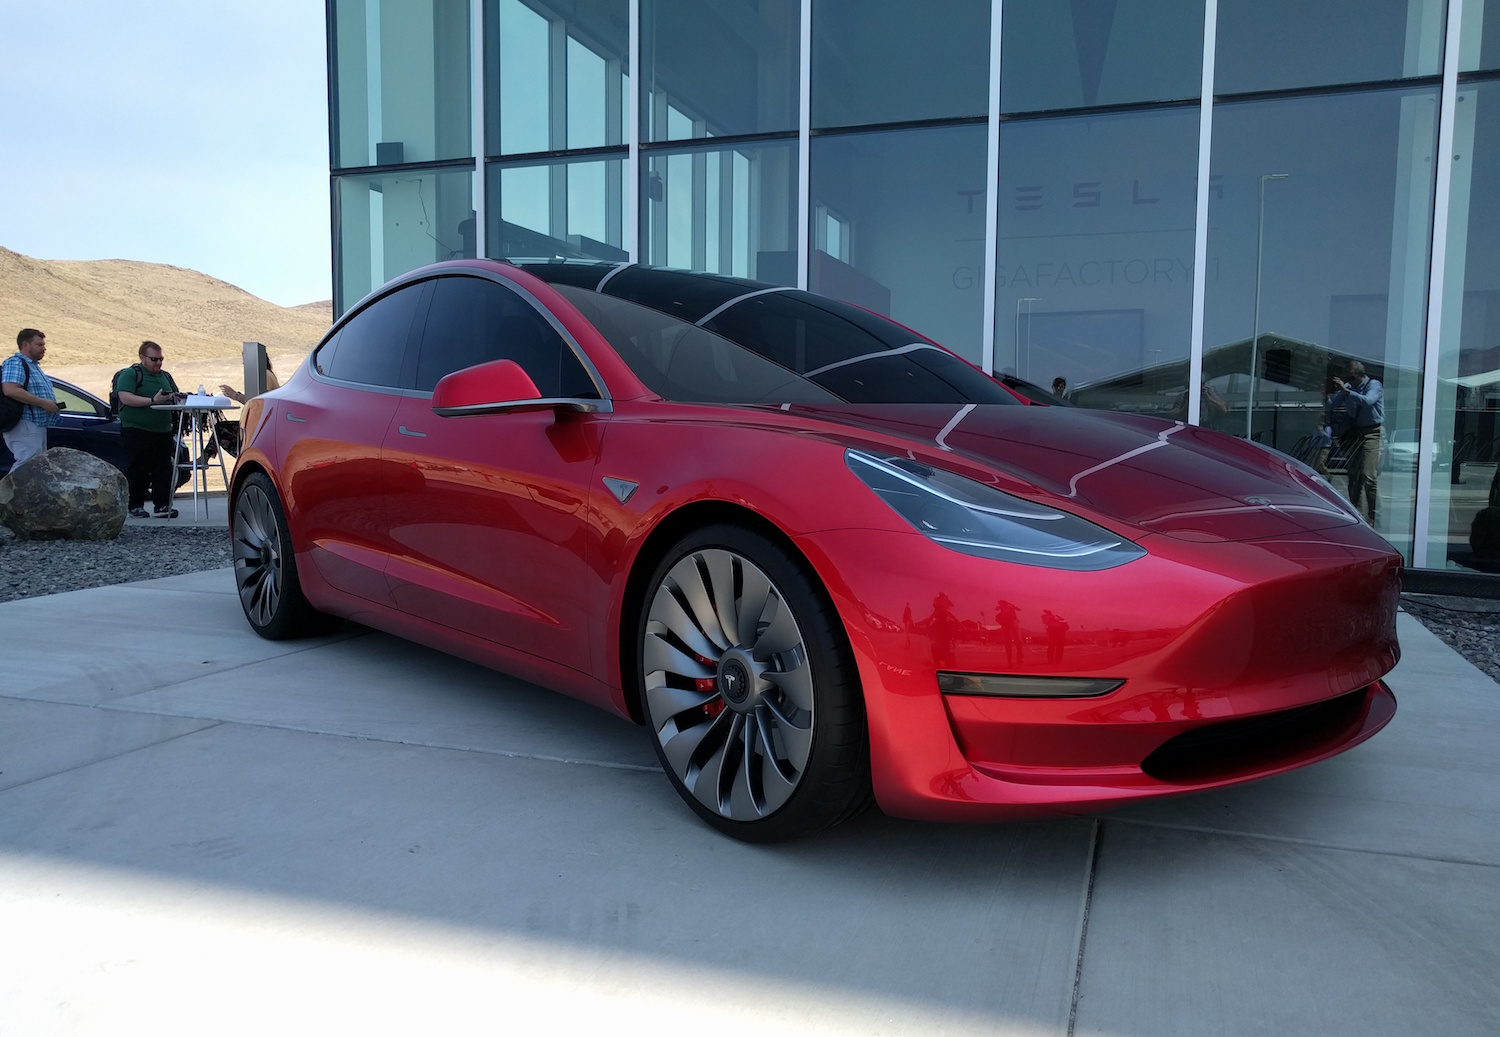 Tesla a terminé la conception de la Model 3 et est en avance sur son planning